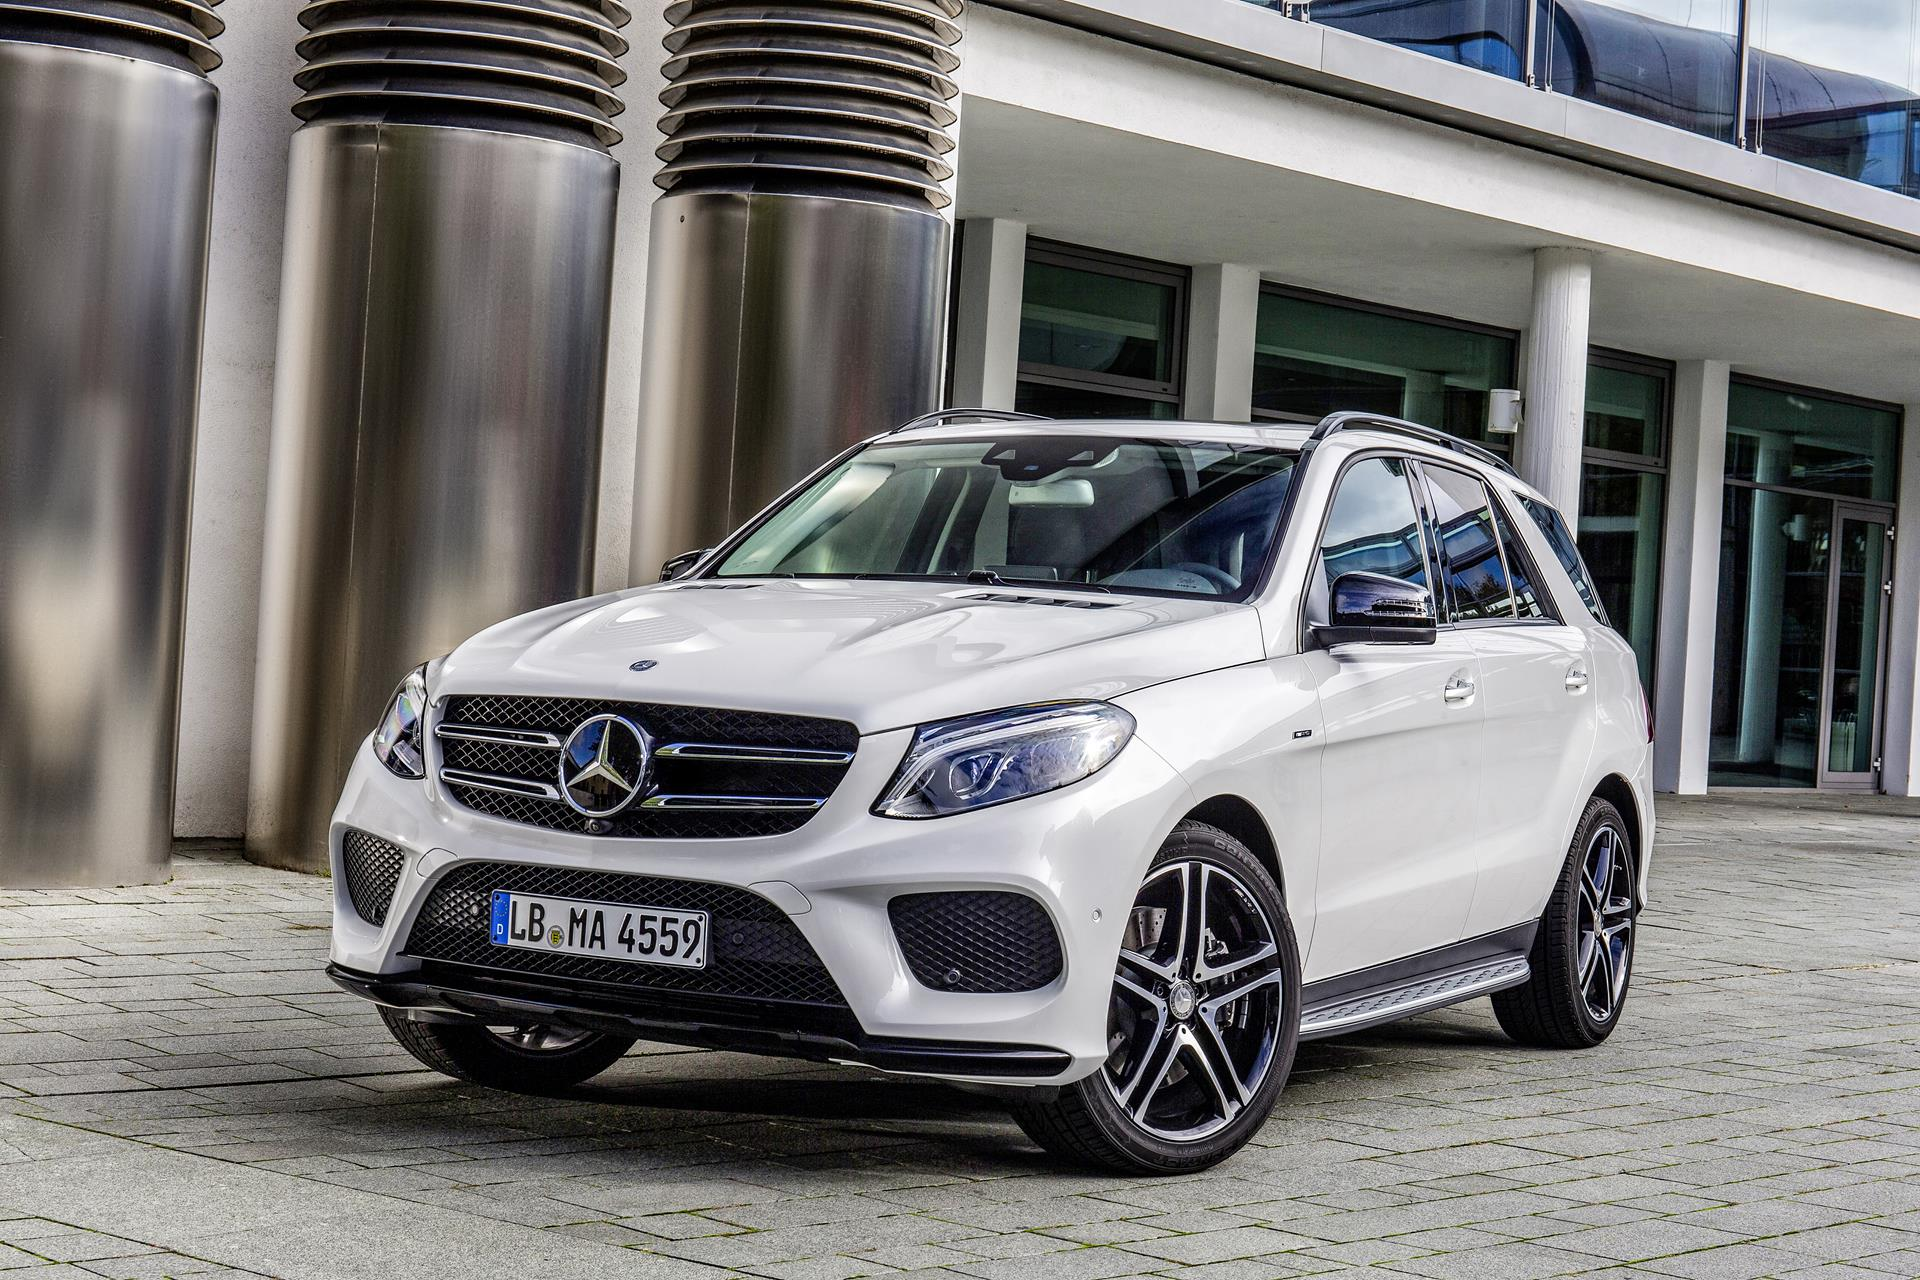 2016 mercedes benz gle 450 amg news and information for Mercedes benz amg suv price